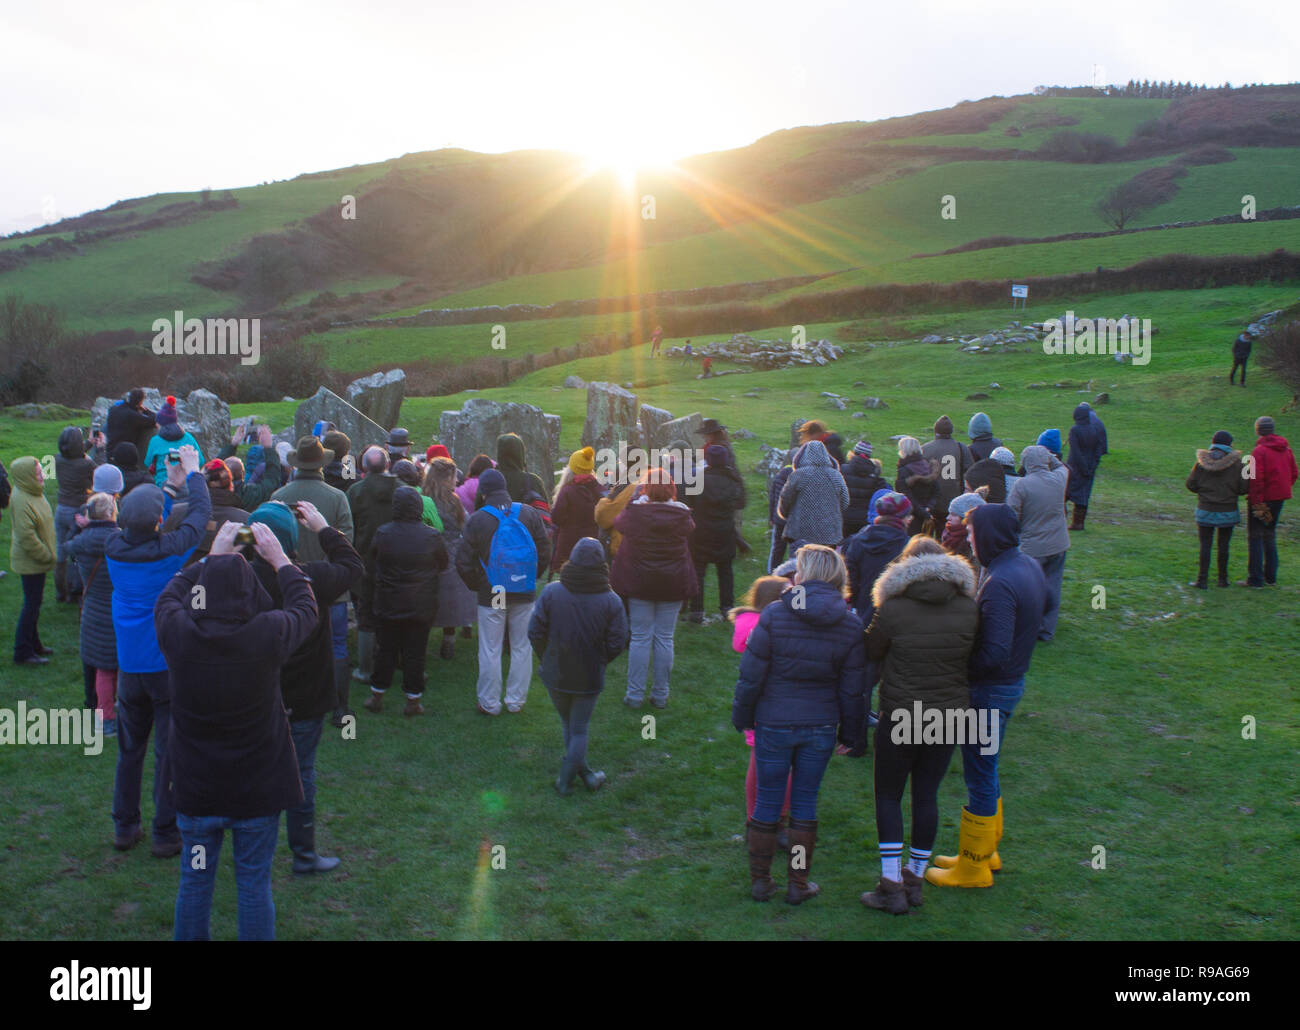 drombeg-stone-circle-glandore-west-cork-ireland-december-21st-2018-large-crowds-gathered-at-drombeg-stone-circle-this-evening-to-celebrate-the-sunset-on-the-midwinter-solstice-most-experts-believe-this-ancient-stone-circle-was-built-to-celebrate-this-shortest-day-of-the-year-credit-aphperspectivealamy-live-news-R9AG69.jpg